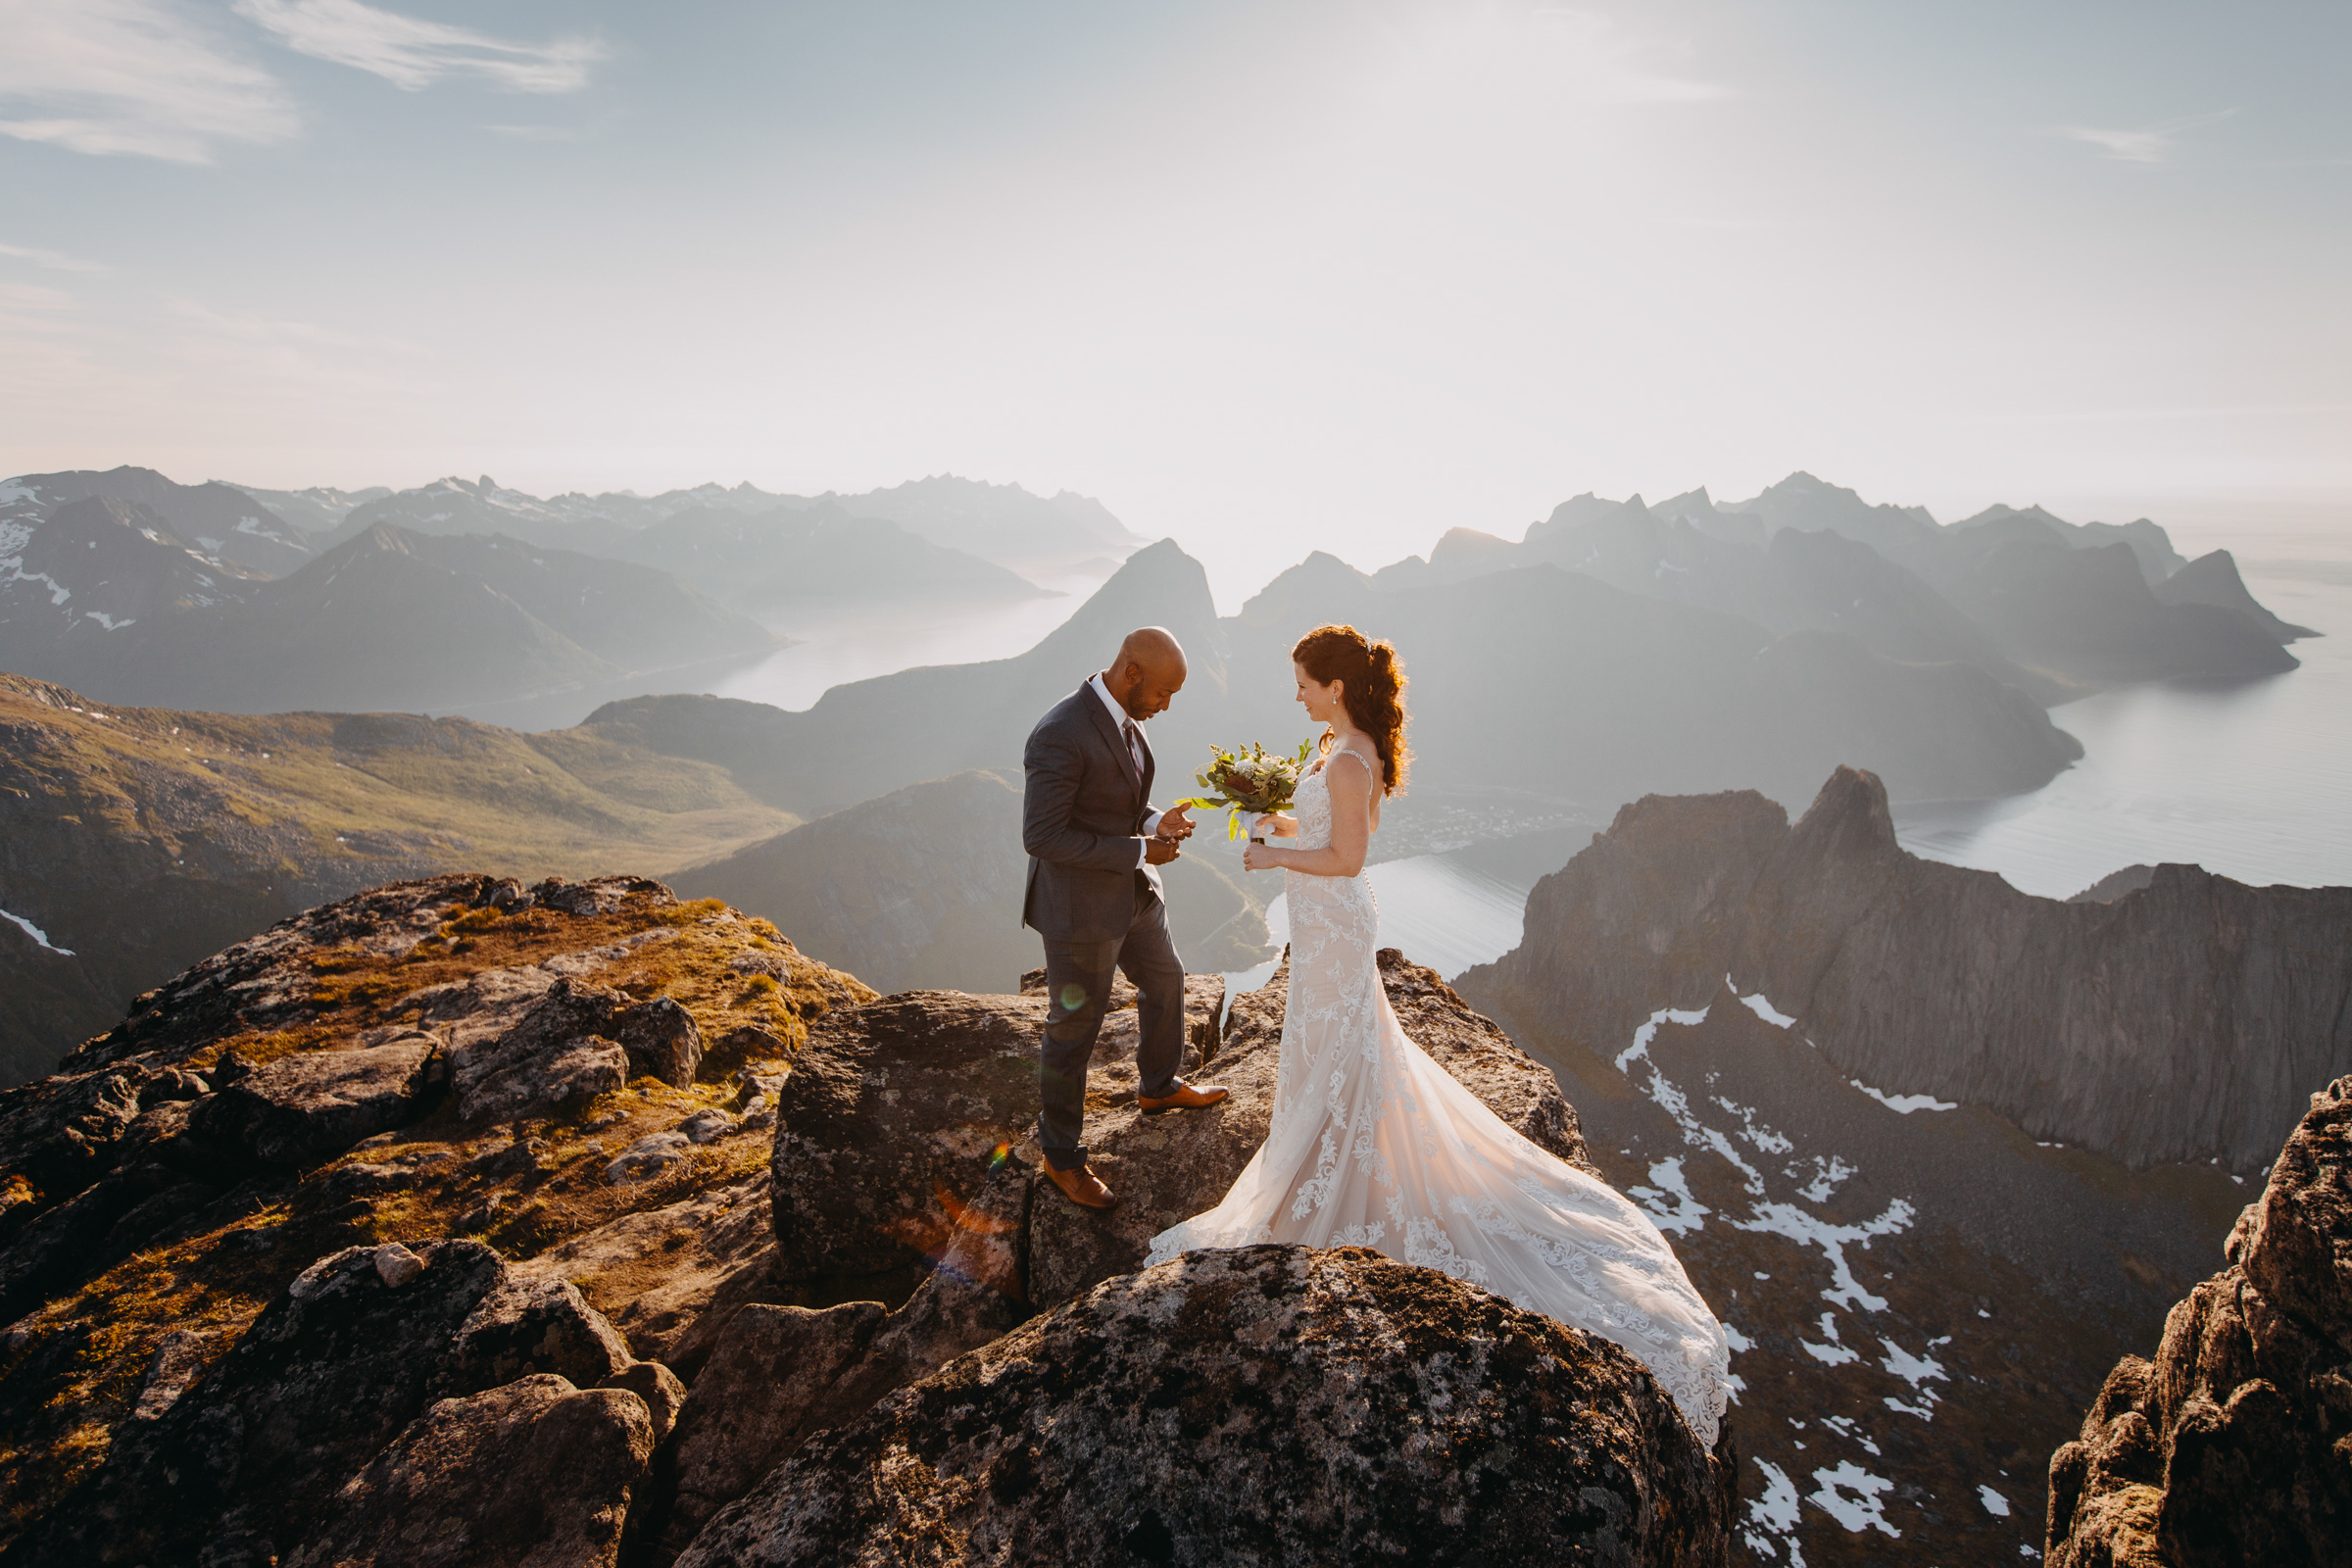 Epic mountain and sea landscape in Senja Norway with elopement couple - photo by Christin Eide Photography